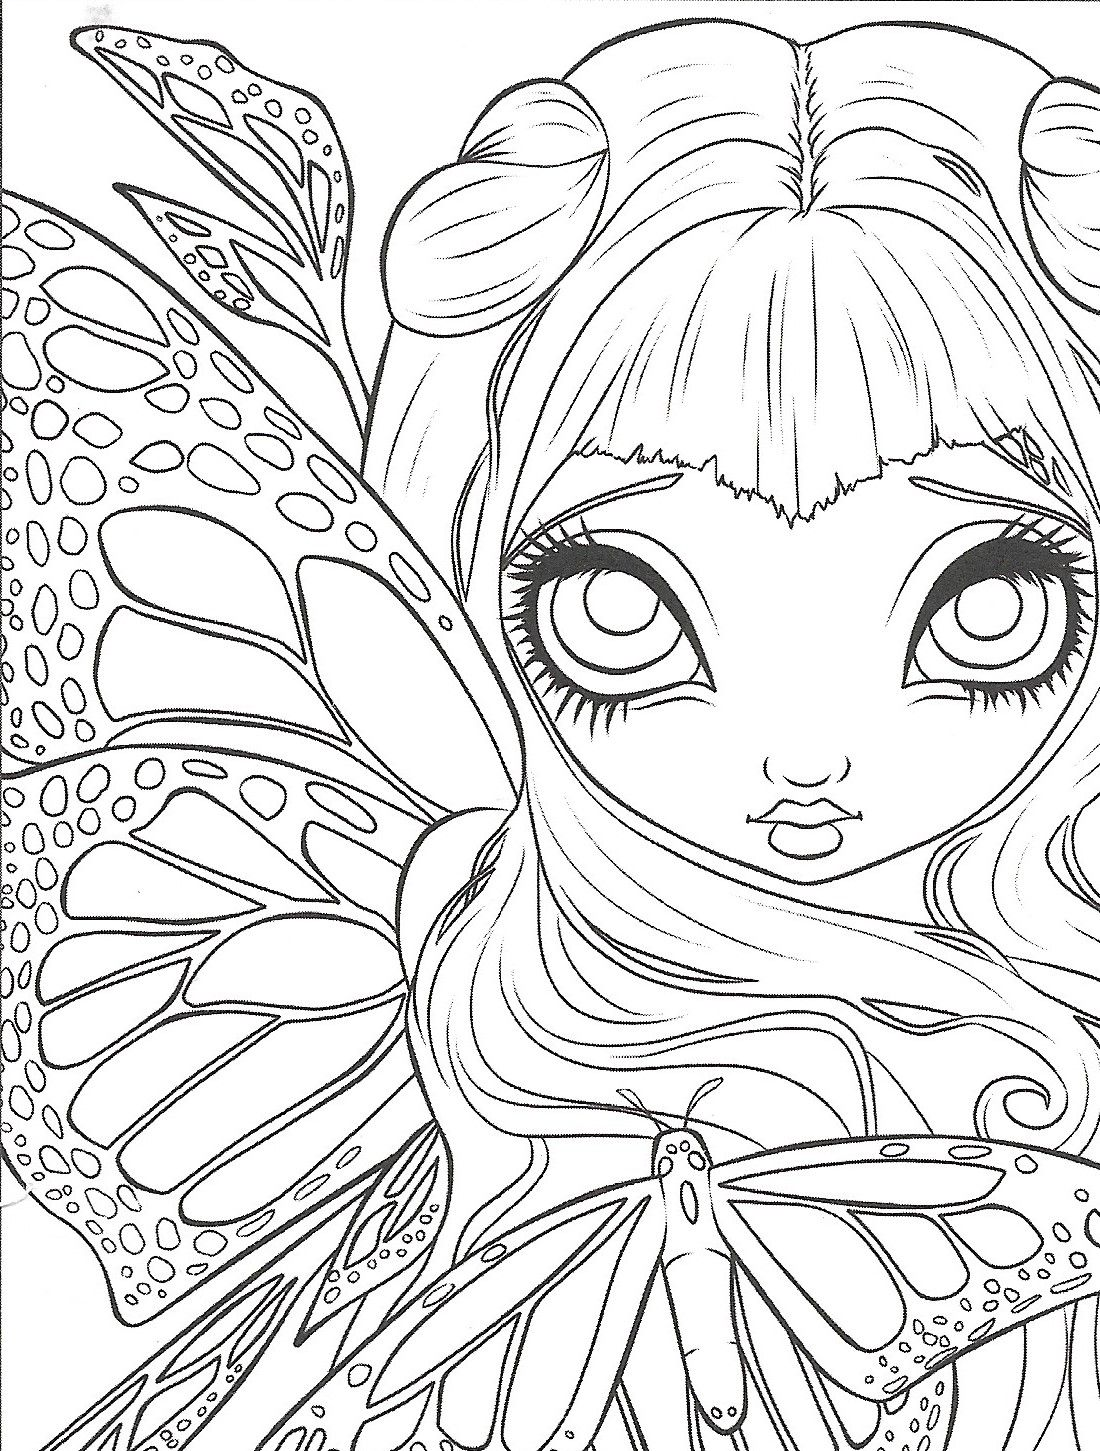 Pin by kayleigh mitchell on colouring pinterest coloring pages